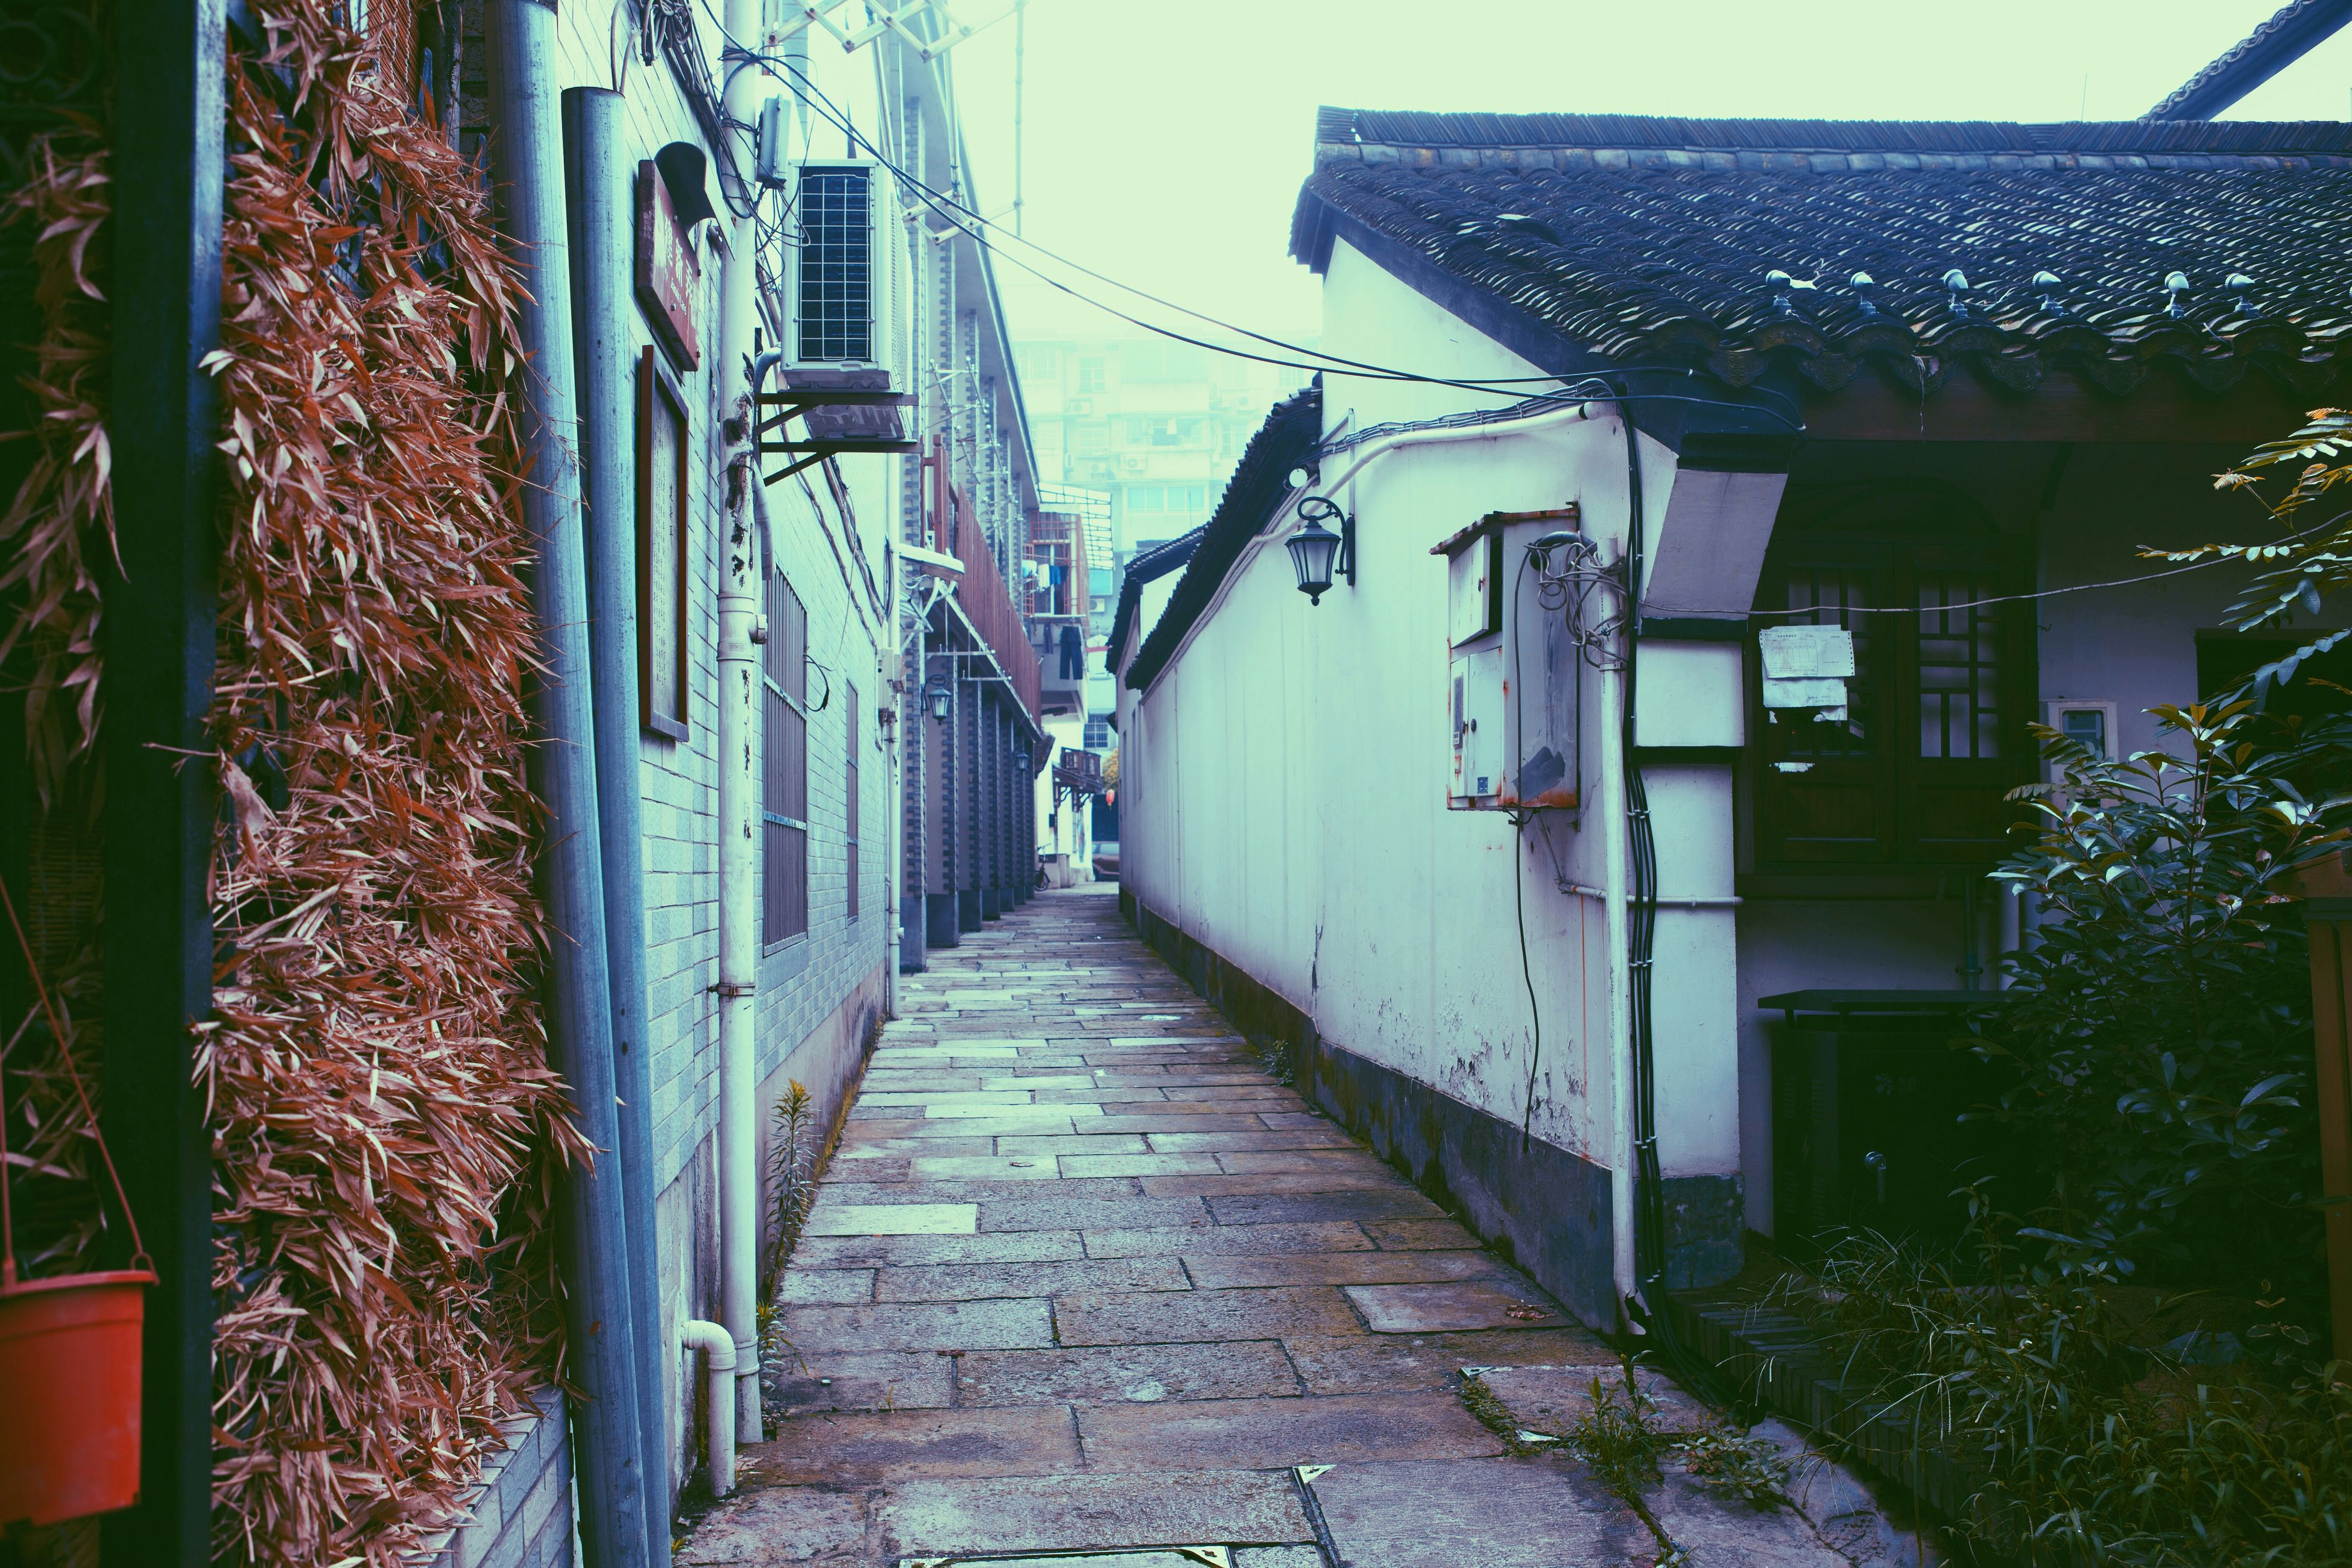 architecture, built structure, building exterior, the way forward, house, residential structure, residential building, alley, narrow, diminishing perspective, walkway, building, street, town, vanishing point, pathway, day, footpath, tree, plant